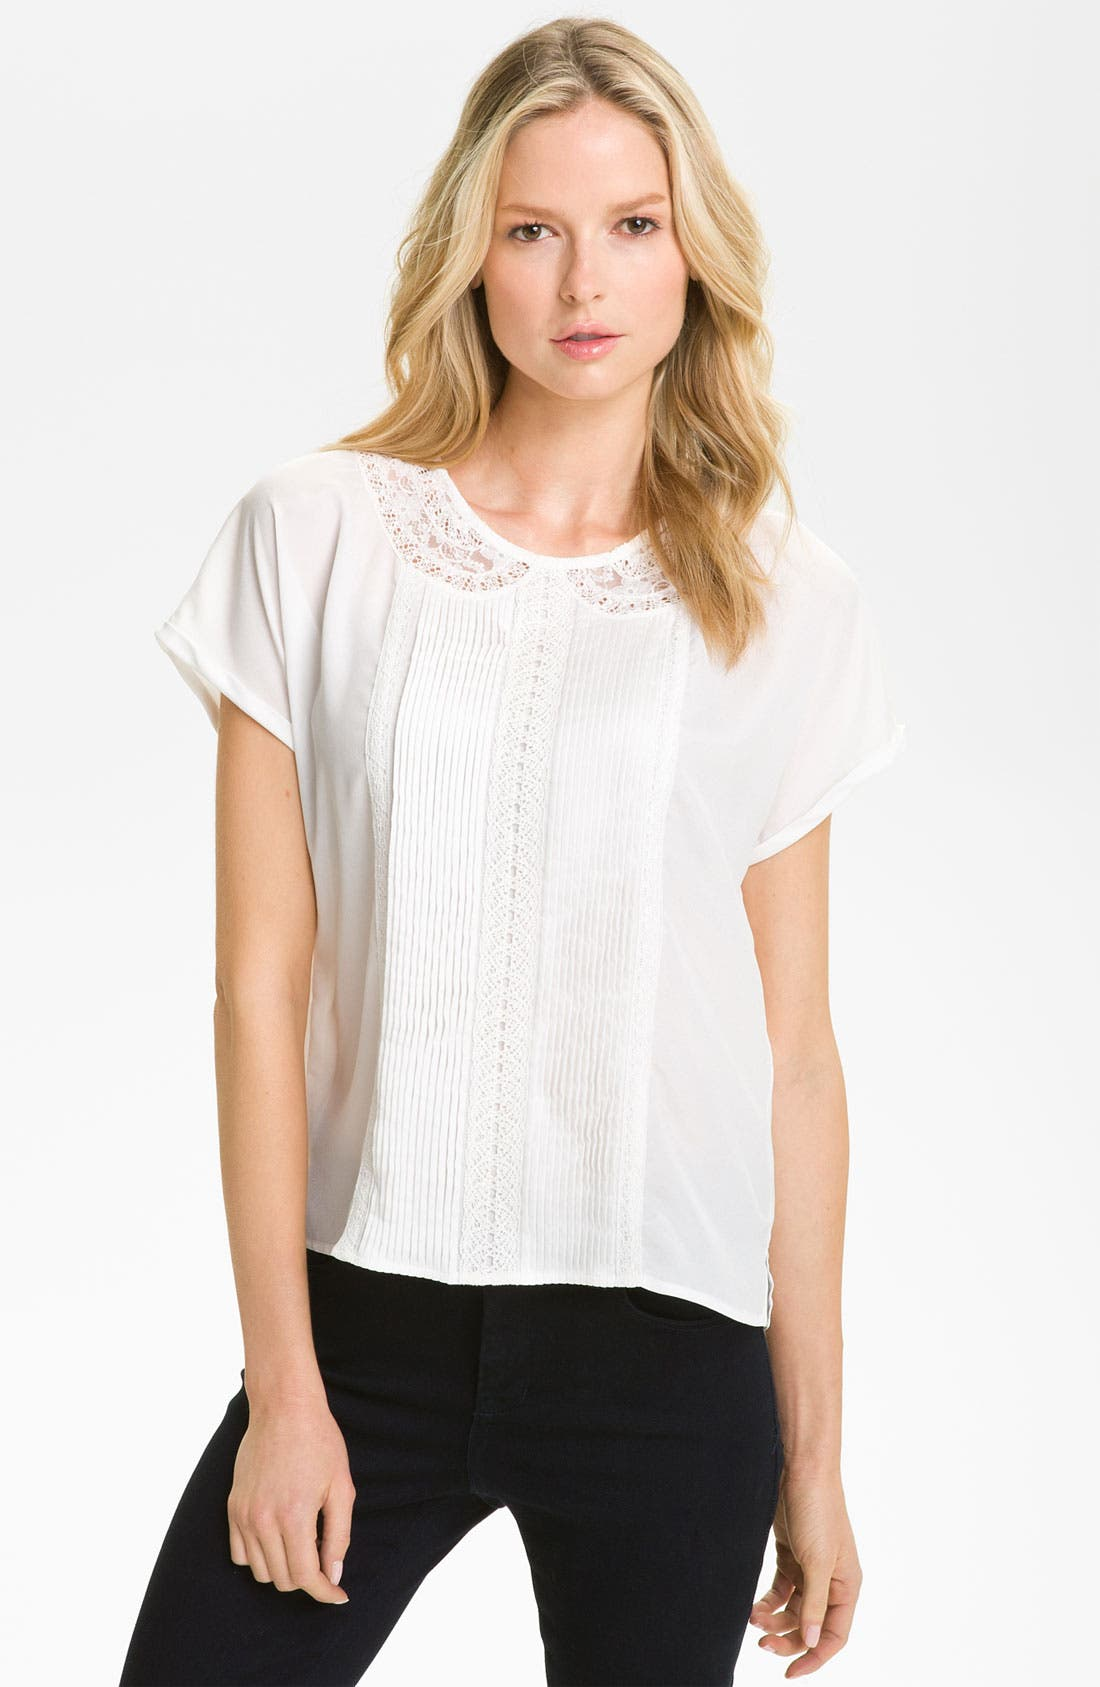 Alternate Image 1 Selected - Gianetta Lace & Pleat Trim Blouse (Petite)